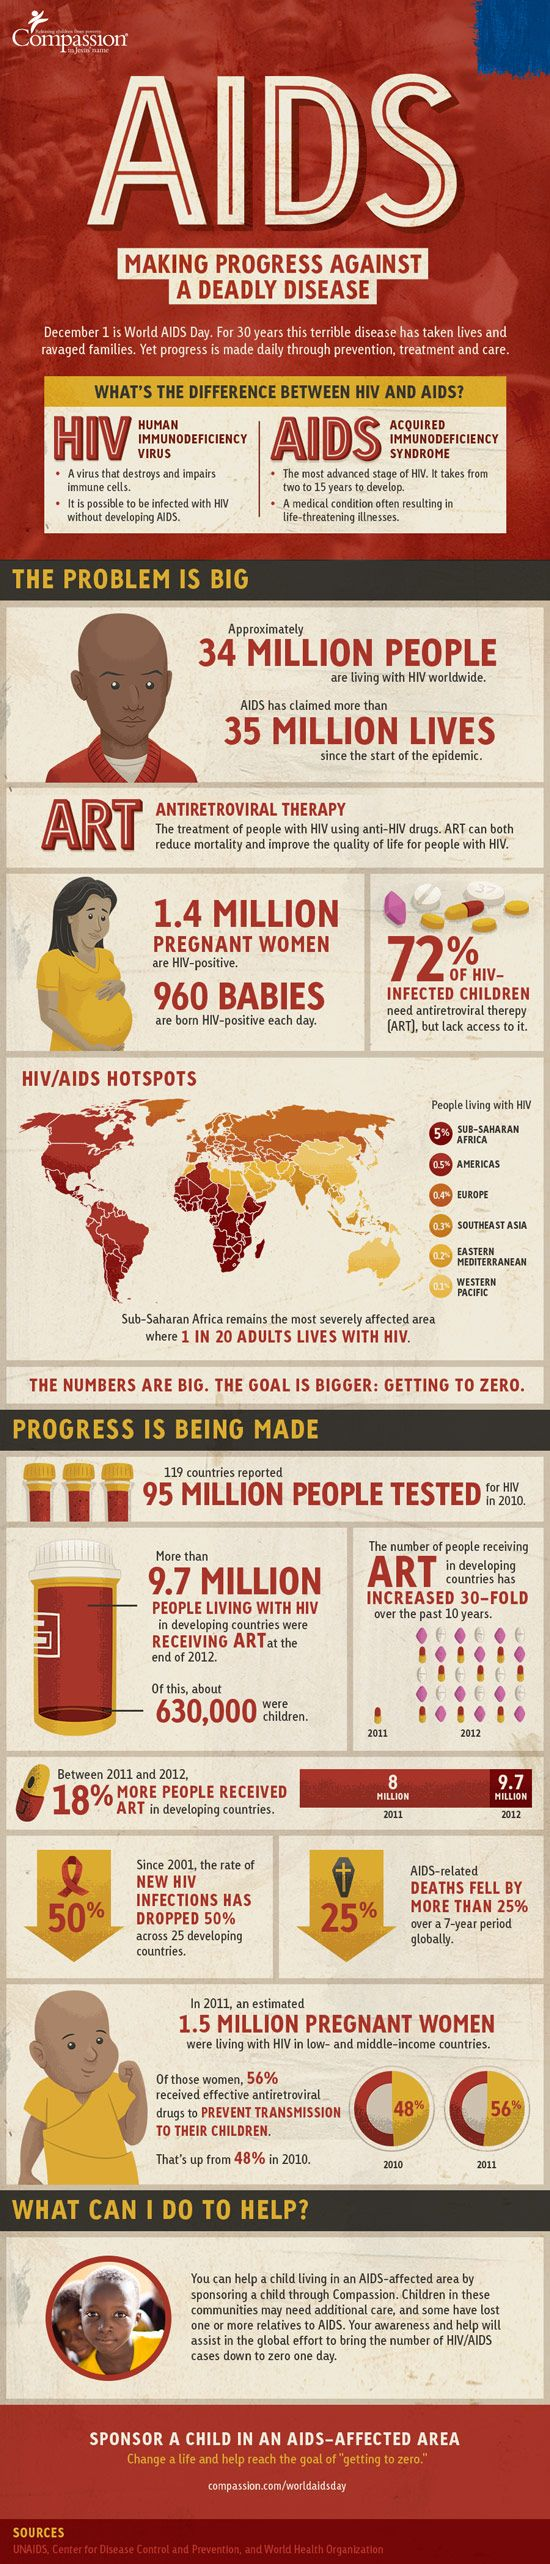 World Aids Day 2013 infographic